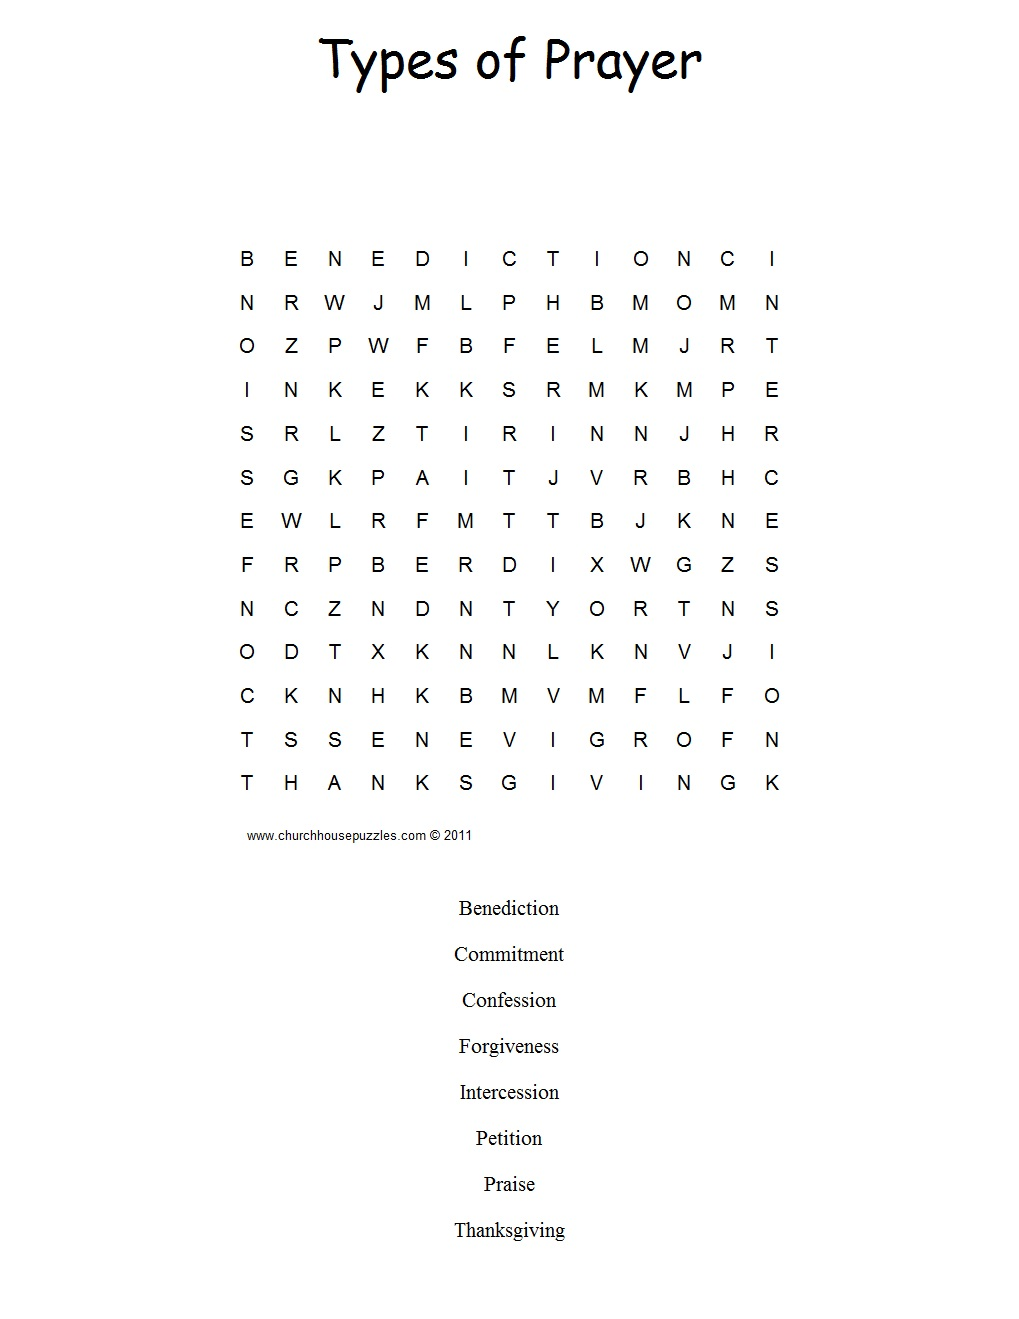 types of prayer word search puzzle